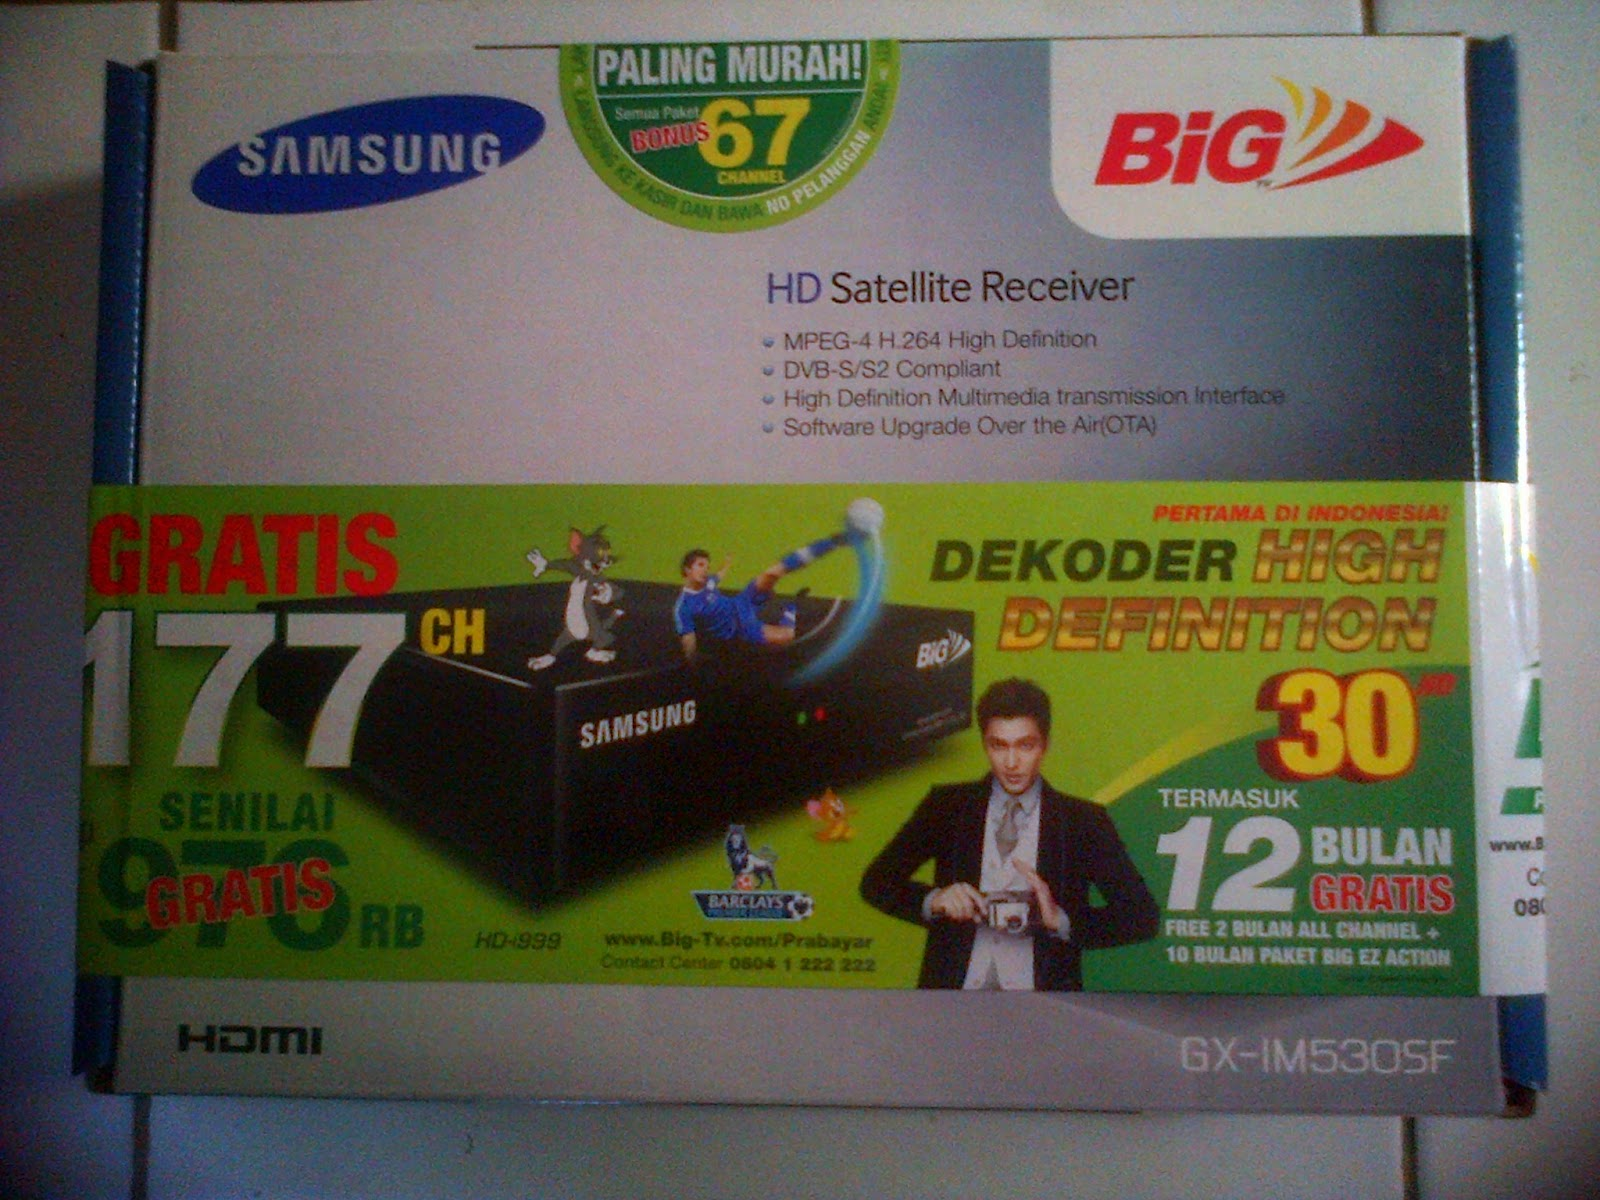 Dekoder / receiver samsung hd big TV